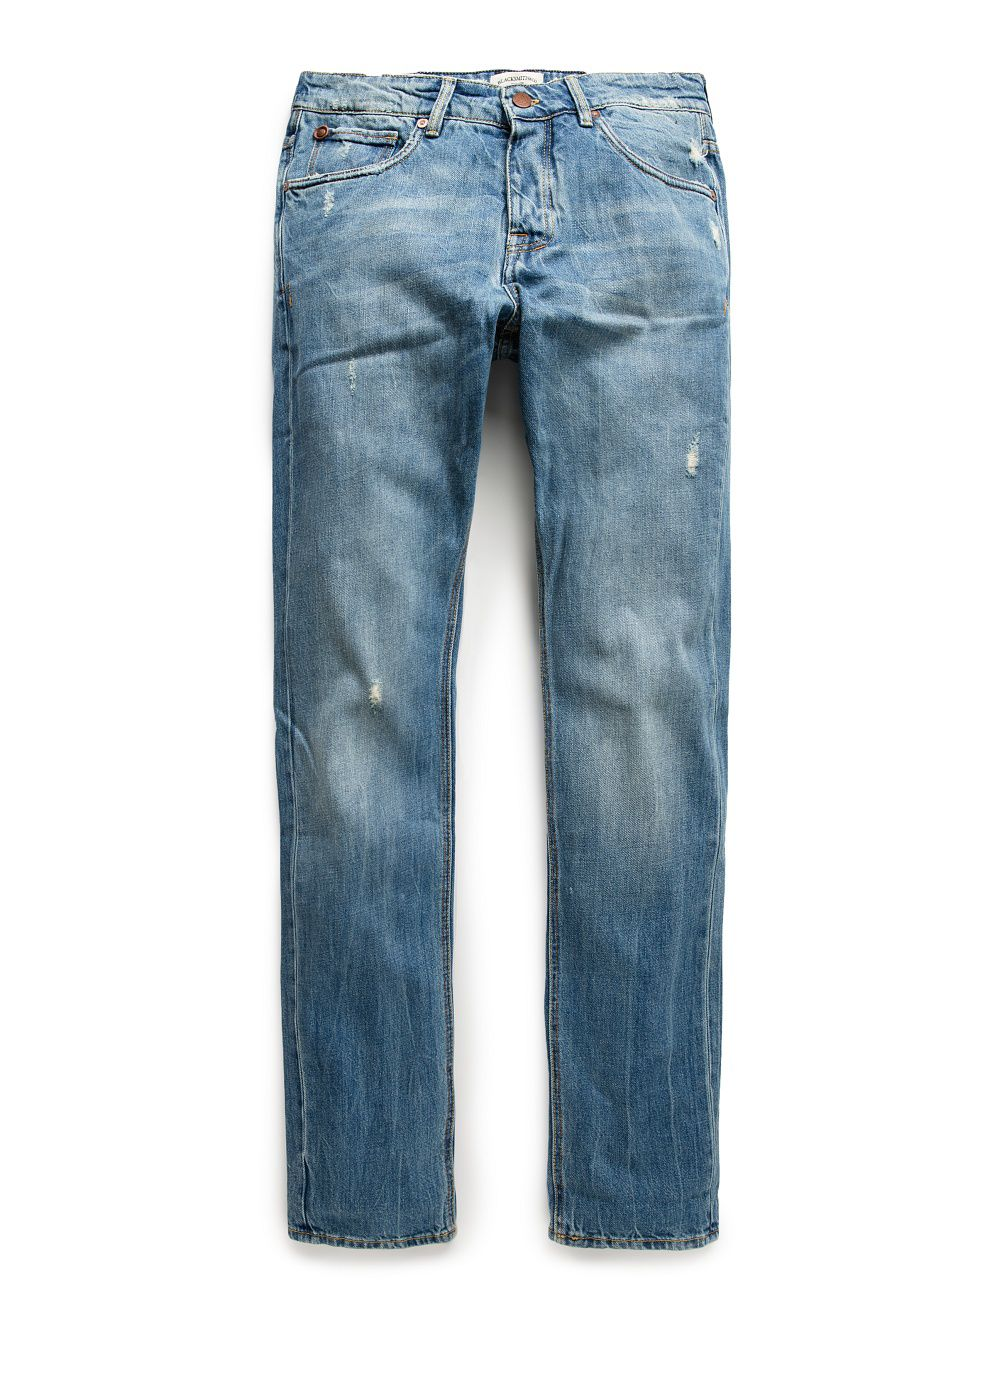 Slim-fit Premium light Steve jeans